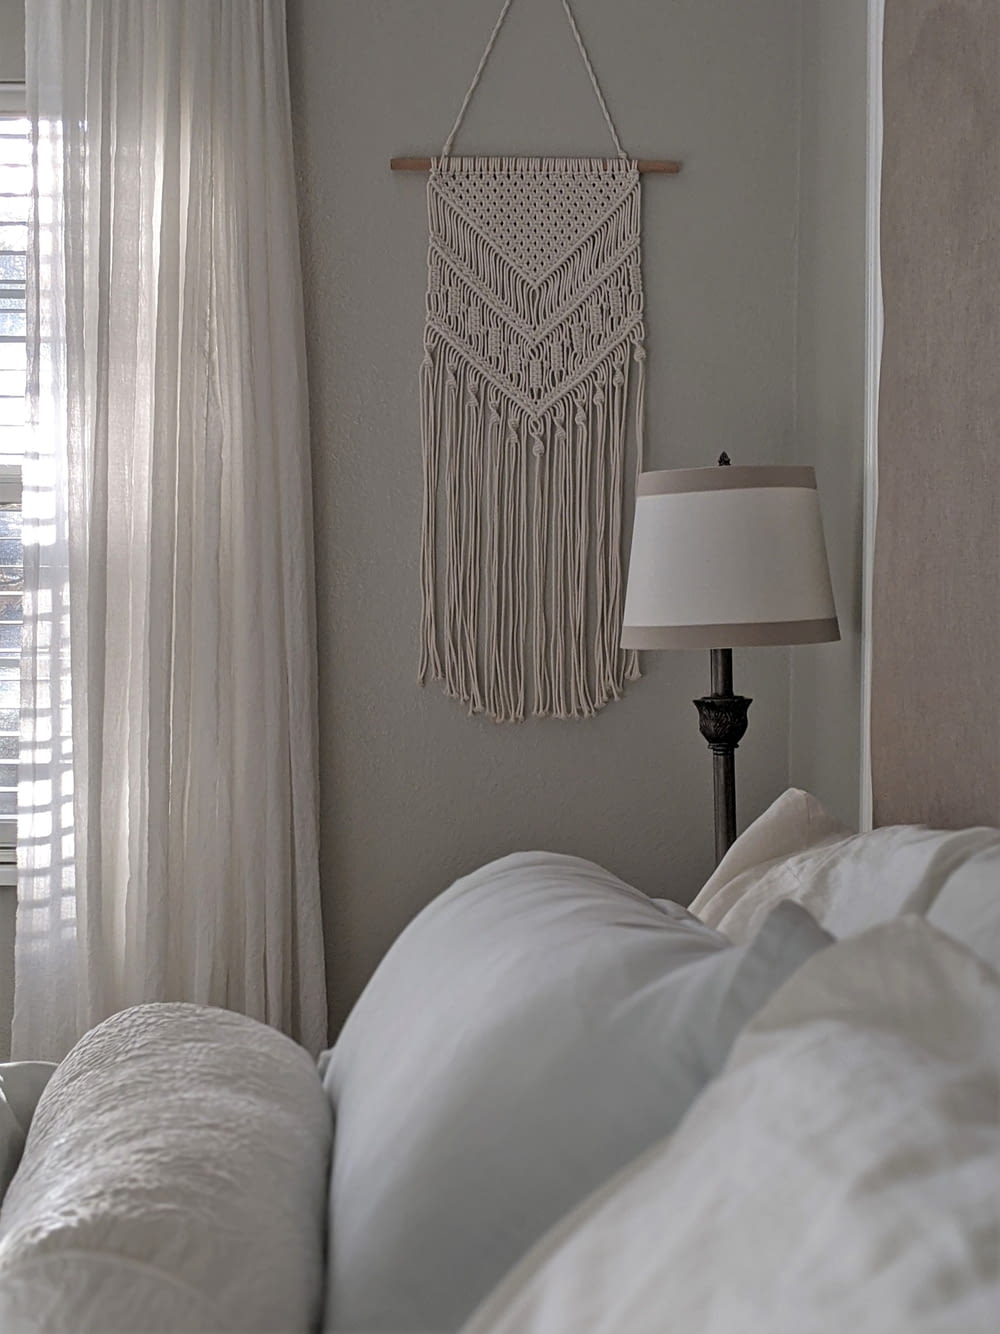 white and black table lamp beside white window curtain